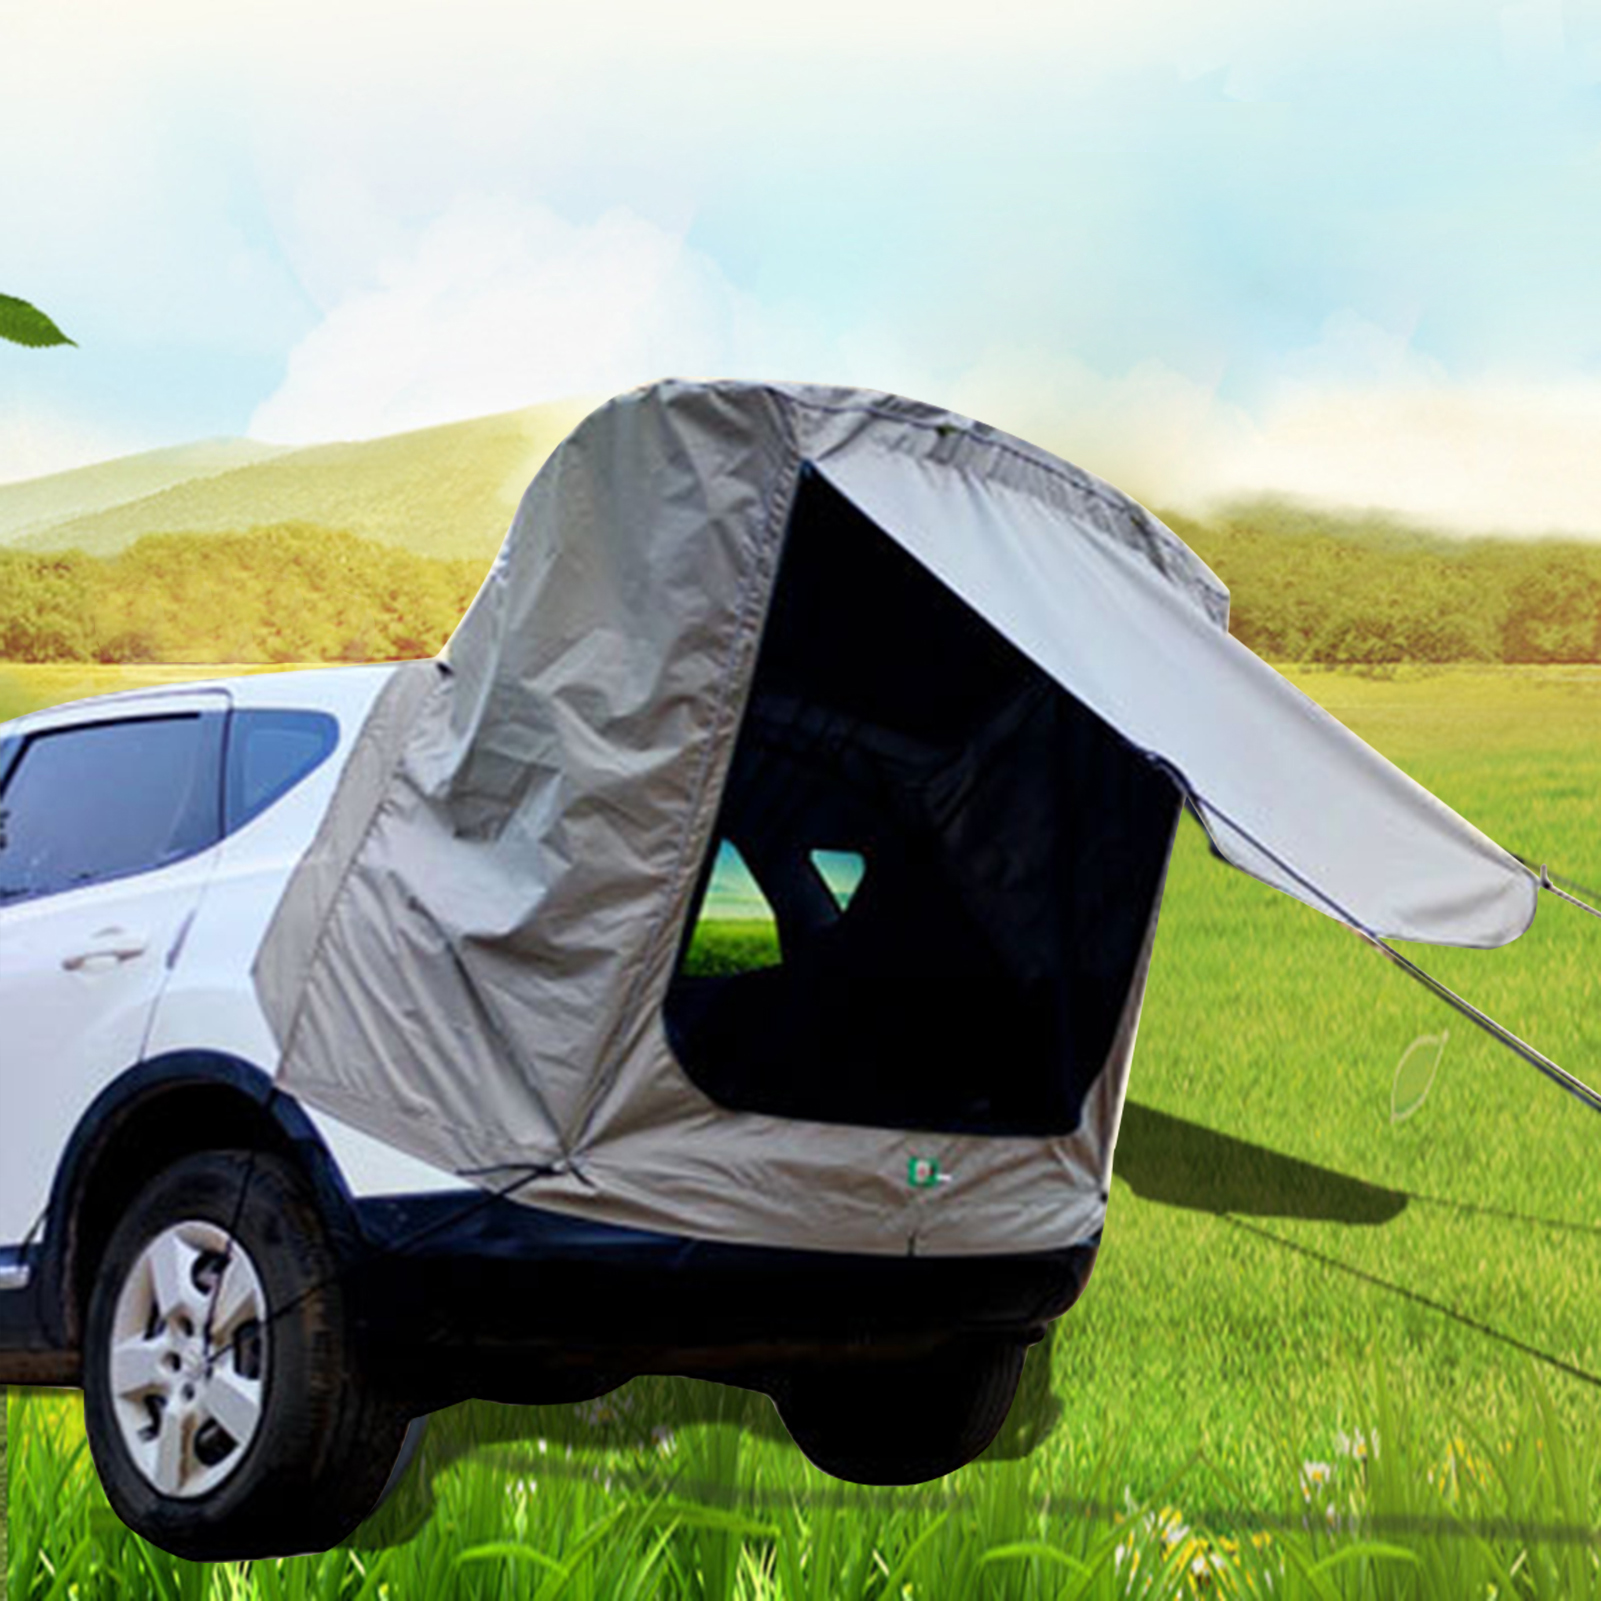 Oxford Cloth Anti-uv Car Rear Trunk Tent Silver-coated Rainproof Tourist Canopy Self-driving Tail Ledger Windproof Suv Awning